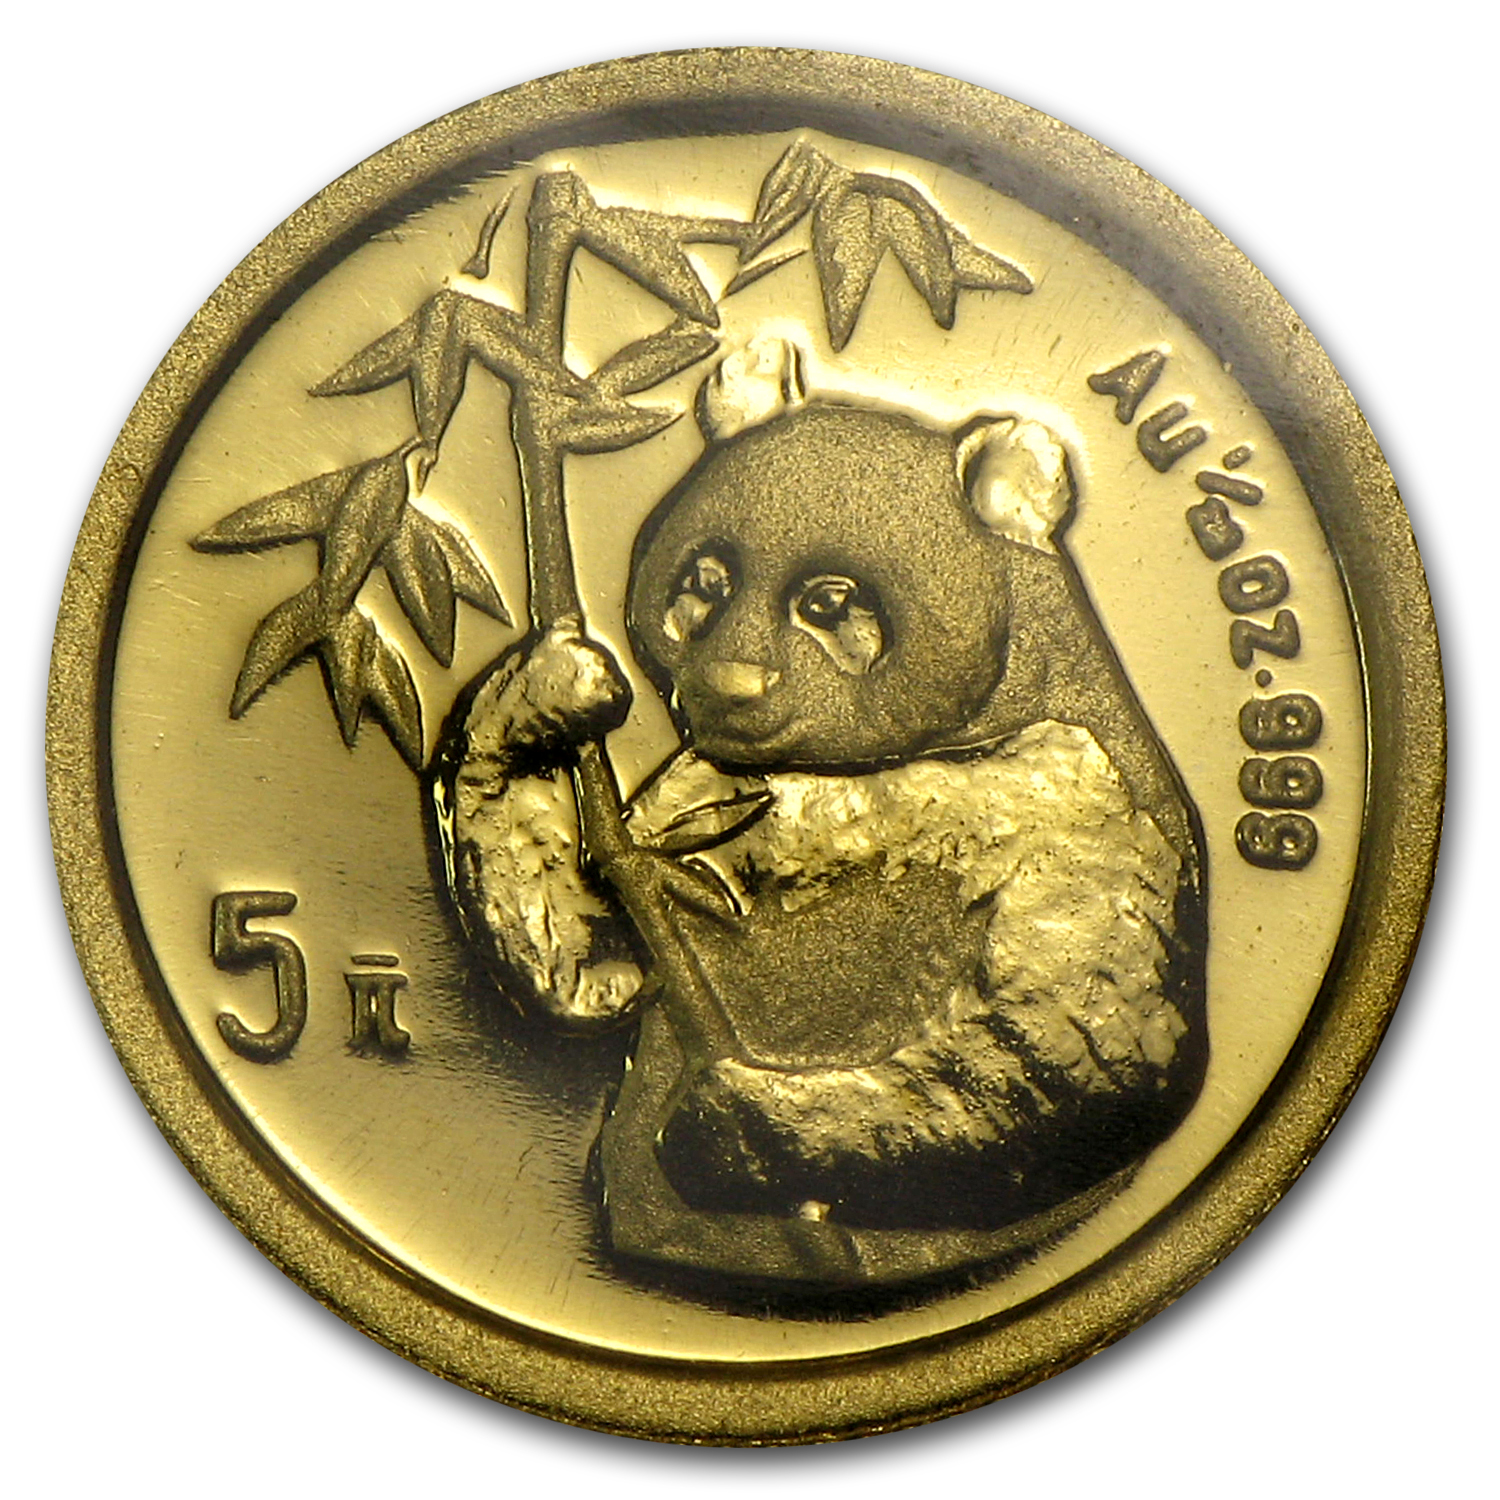 1995 (1/20 oz) Gold Chinese Pandas - Large Date (Sealed)